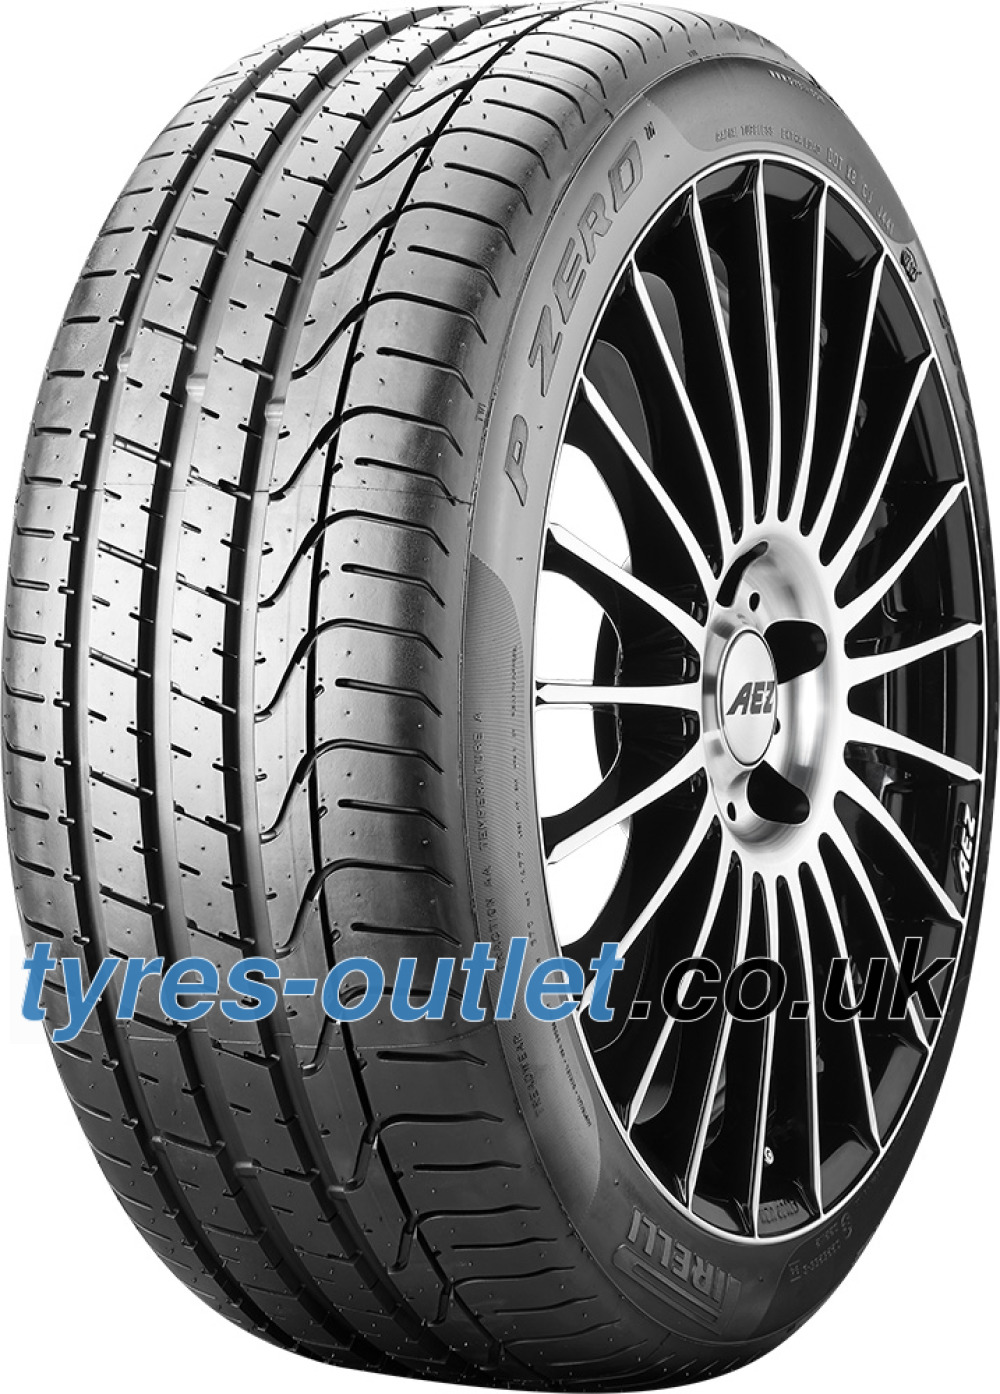 Pirelli P Zero ( 245/45 R18 96Y AO, with rim protection (MFS) )